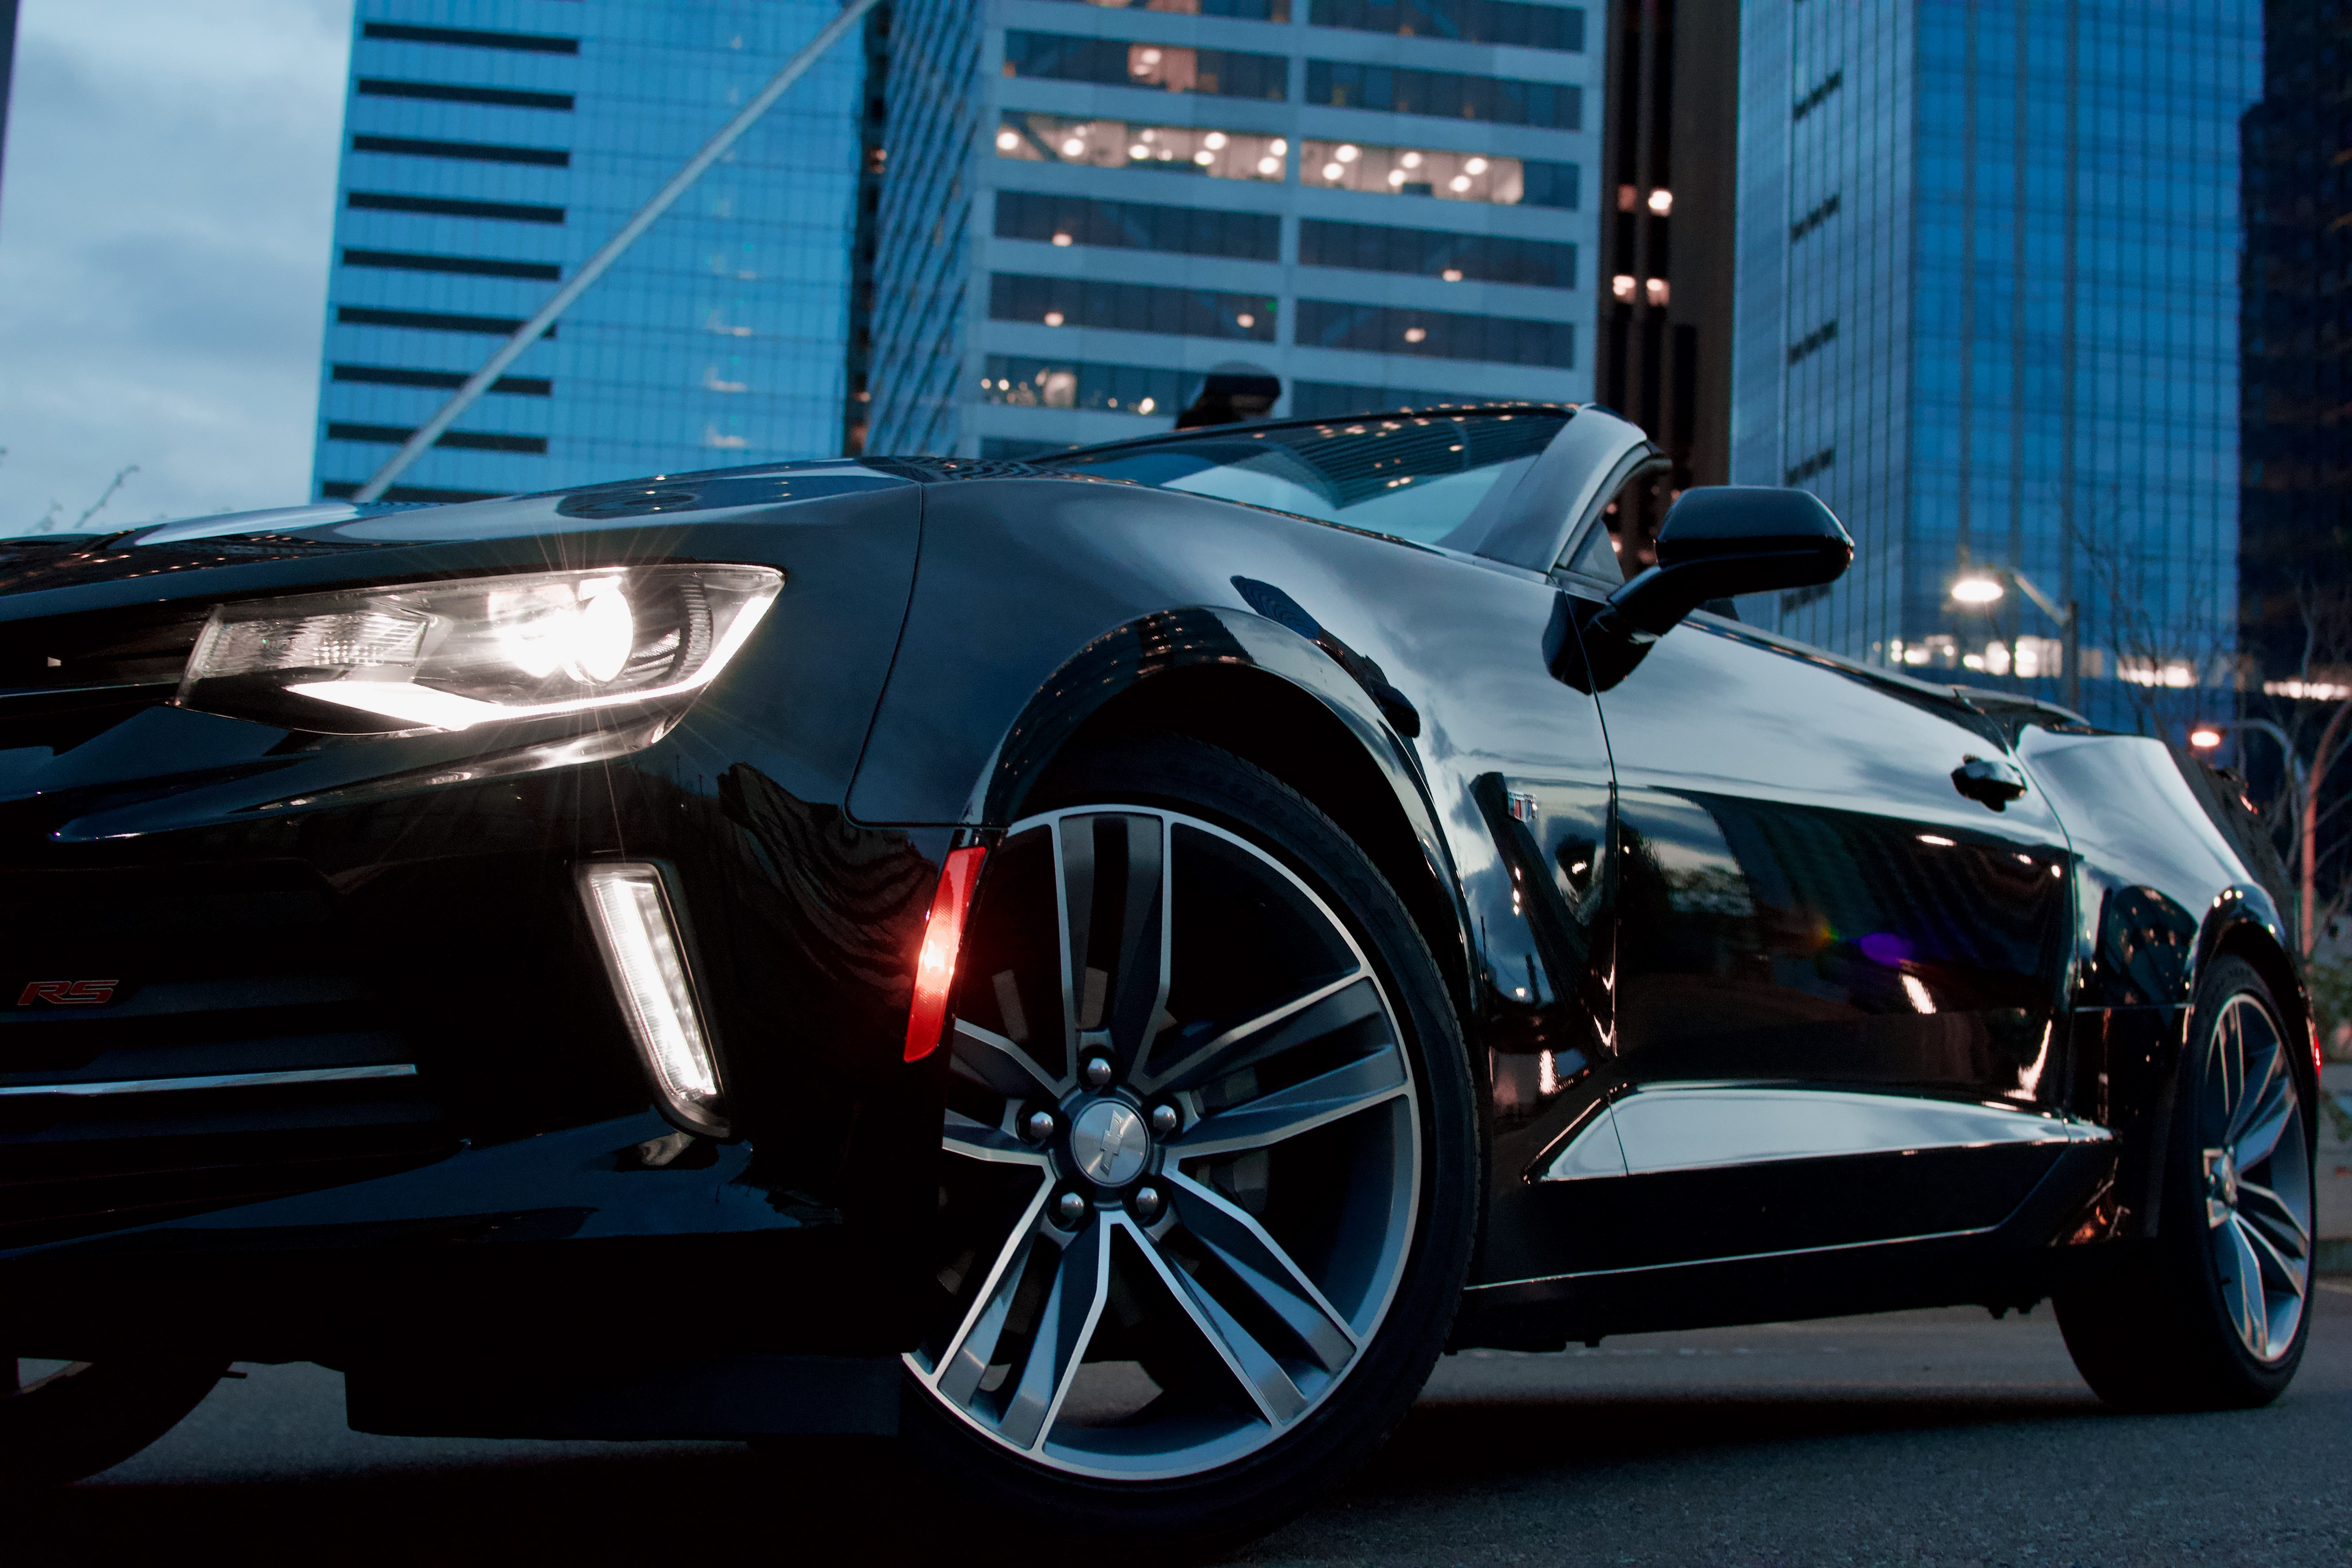 black convertible coupe parked near high-rise building